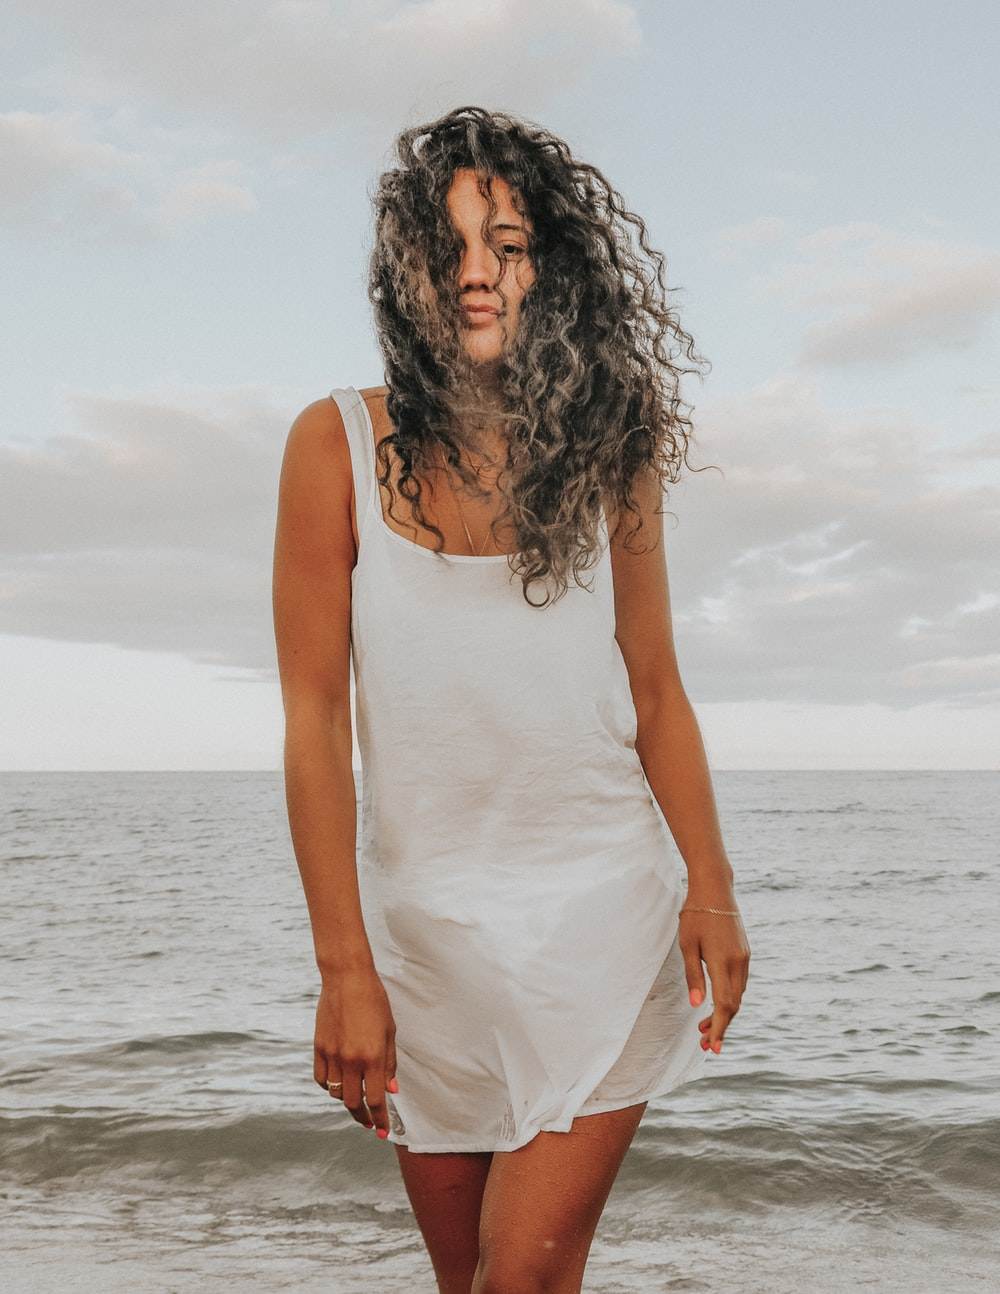 woman in white tank top standing on sea shore during daytime